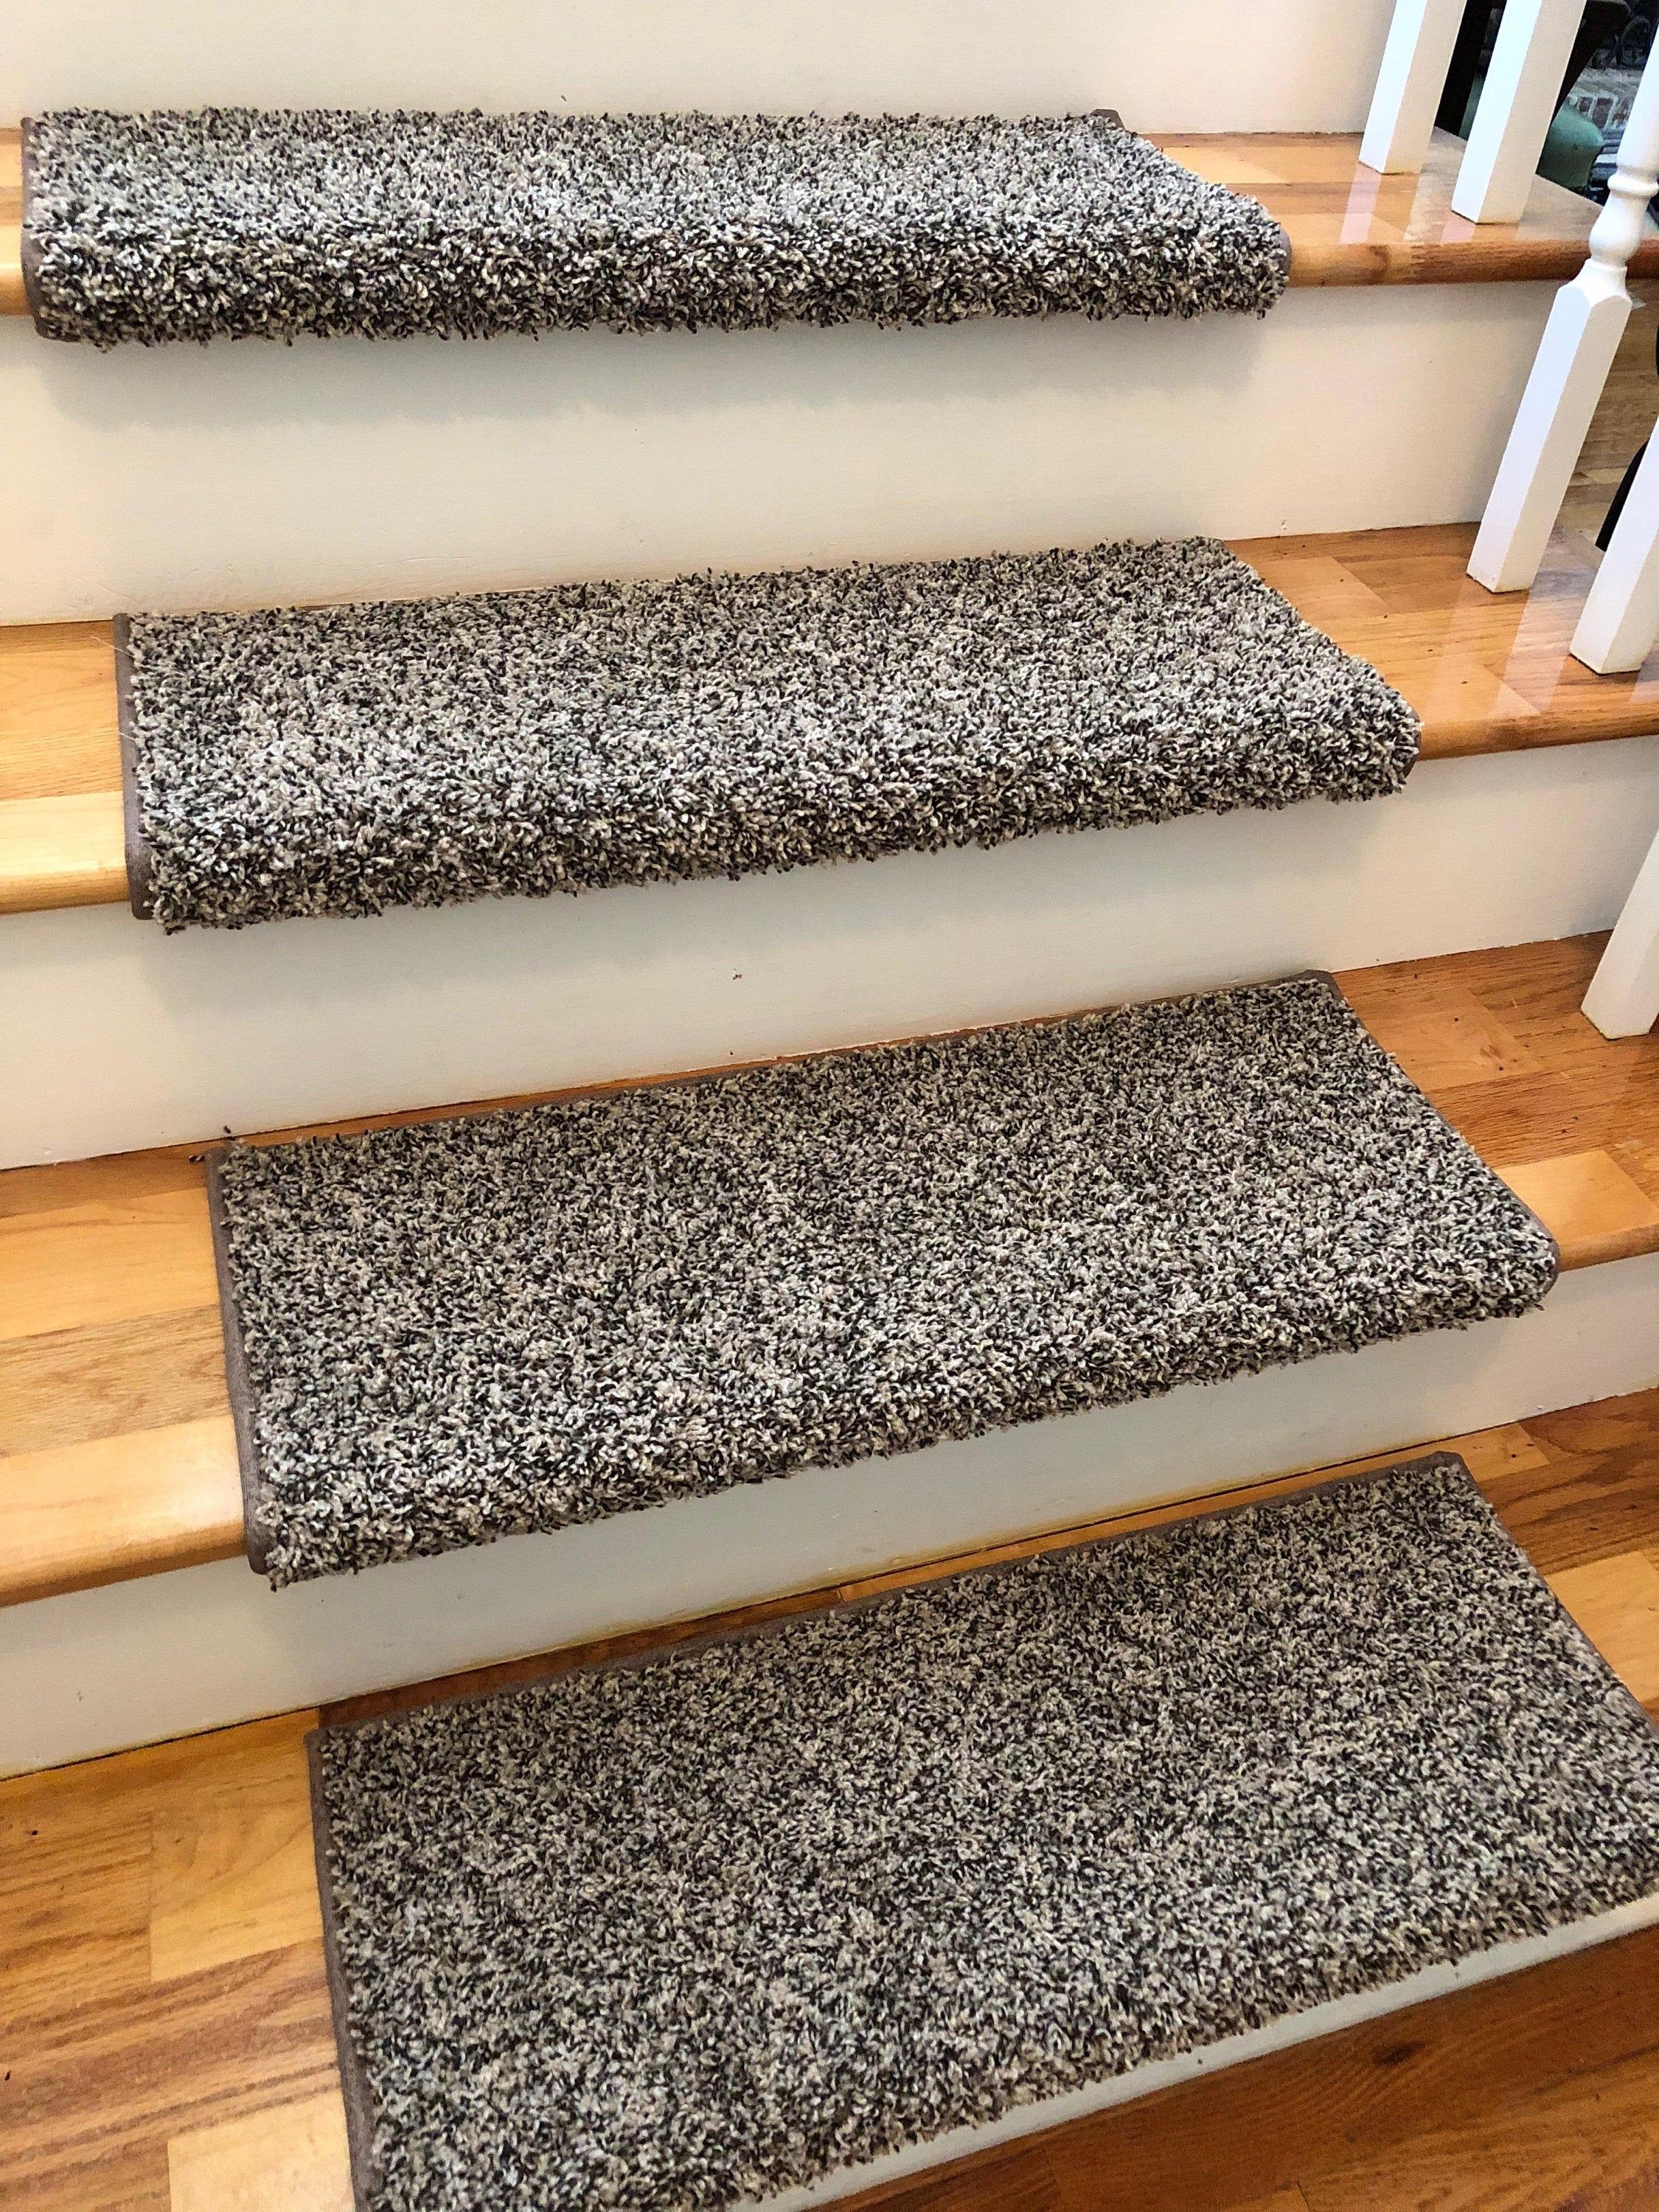 Pin On Carpet Stair Treads | Home Depot Carpet Treads | Ottomanson Softy | Tread Covers | Rugs | Staircase | Stairs